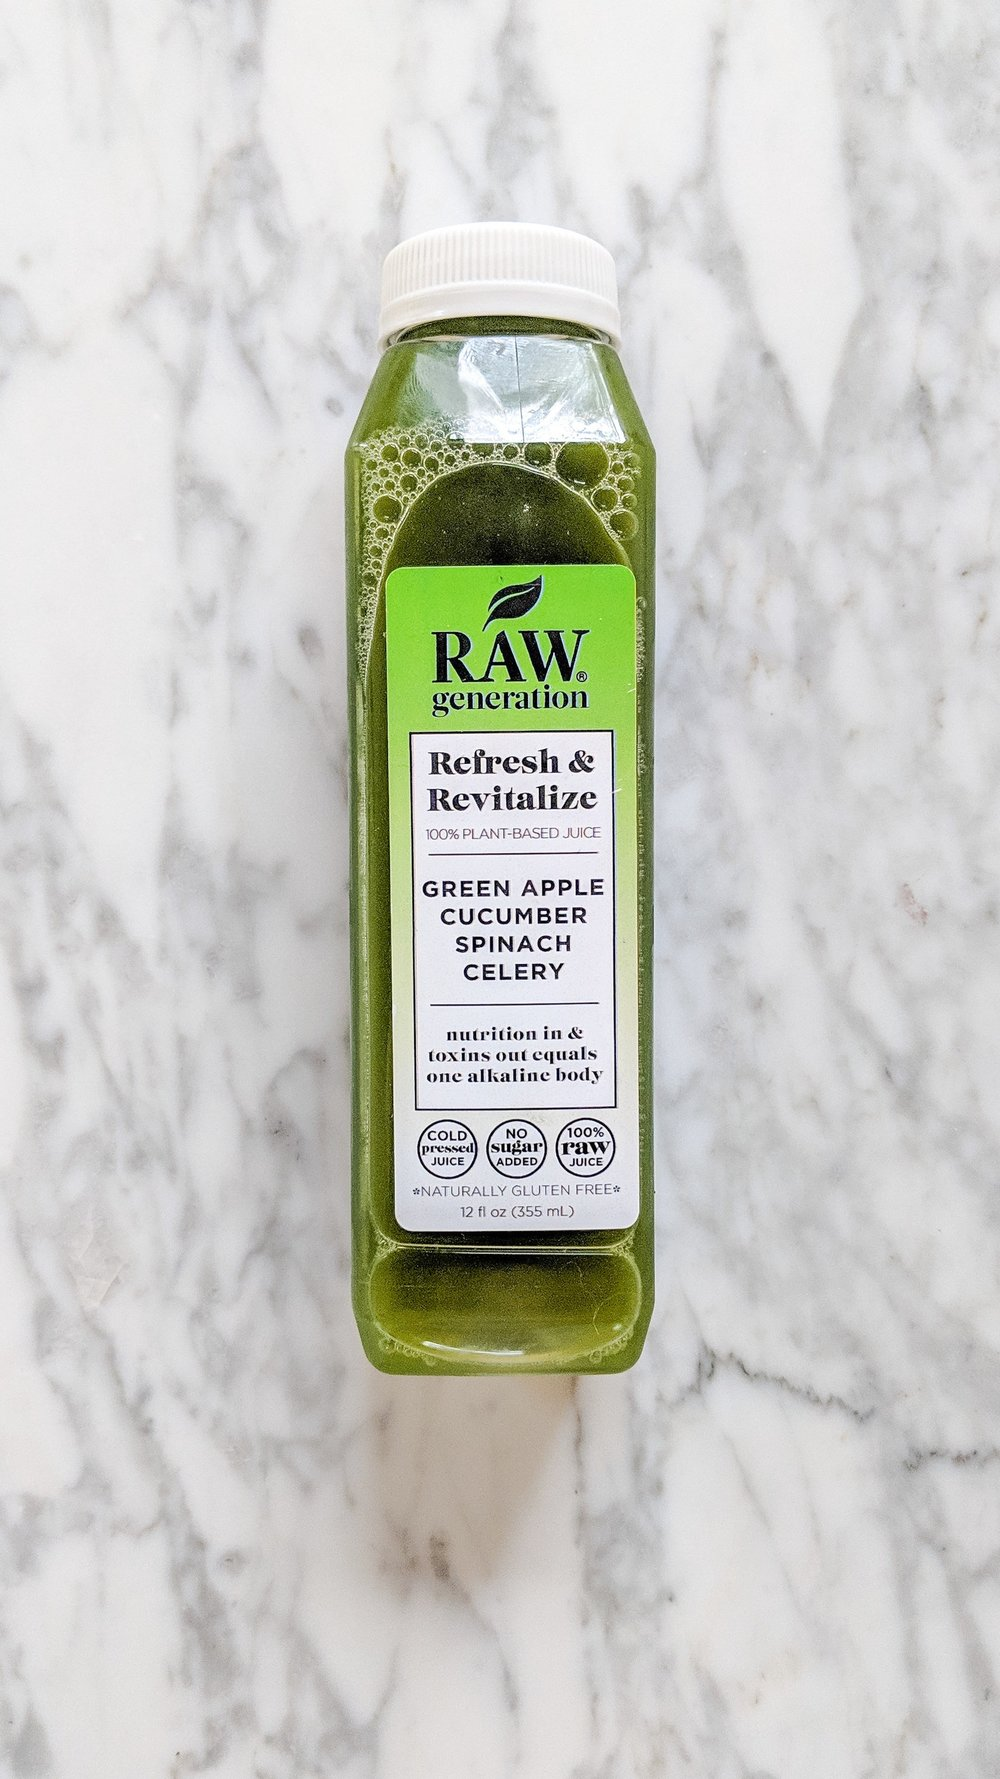 """""""Refresh & Revitalize"""" - INGREDIENTS: green apple, cucumber, spinach, celery, and filtered water.WHAT IT DOES: This juice is for putting """"nutrition in & toxins out."""" Most days I drank this one around lunch time!"""